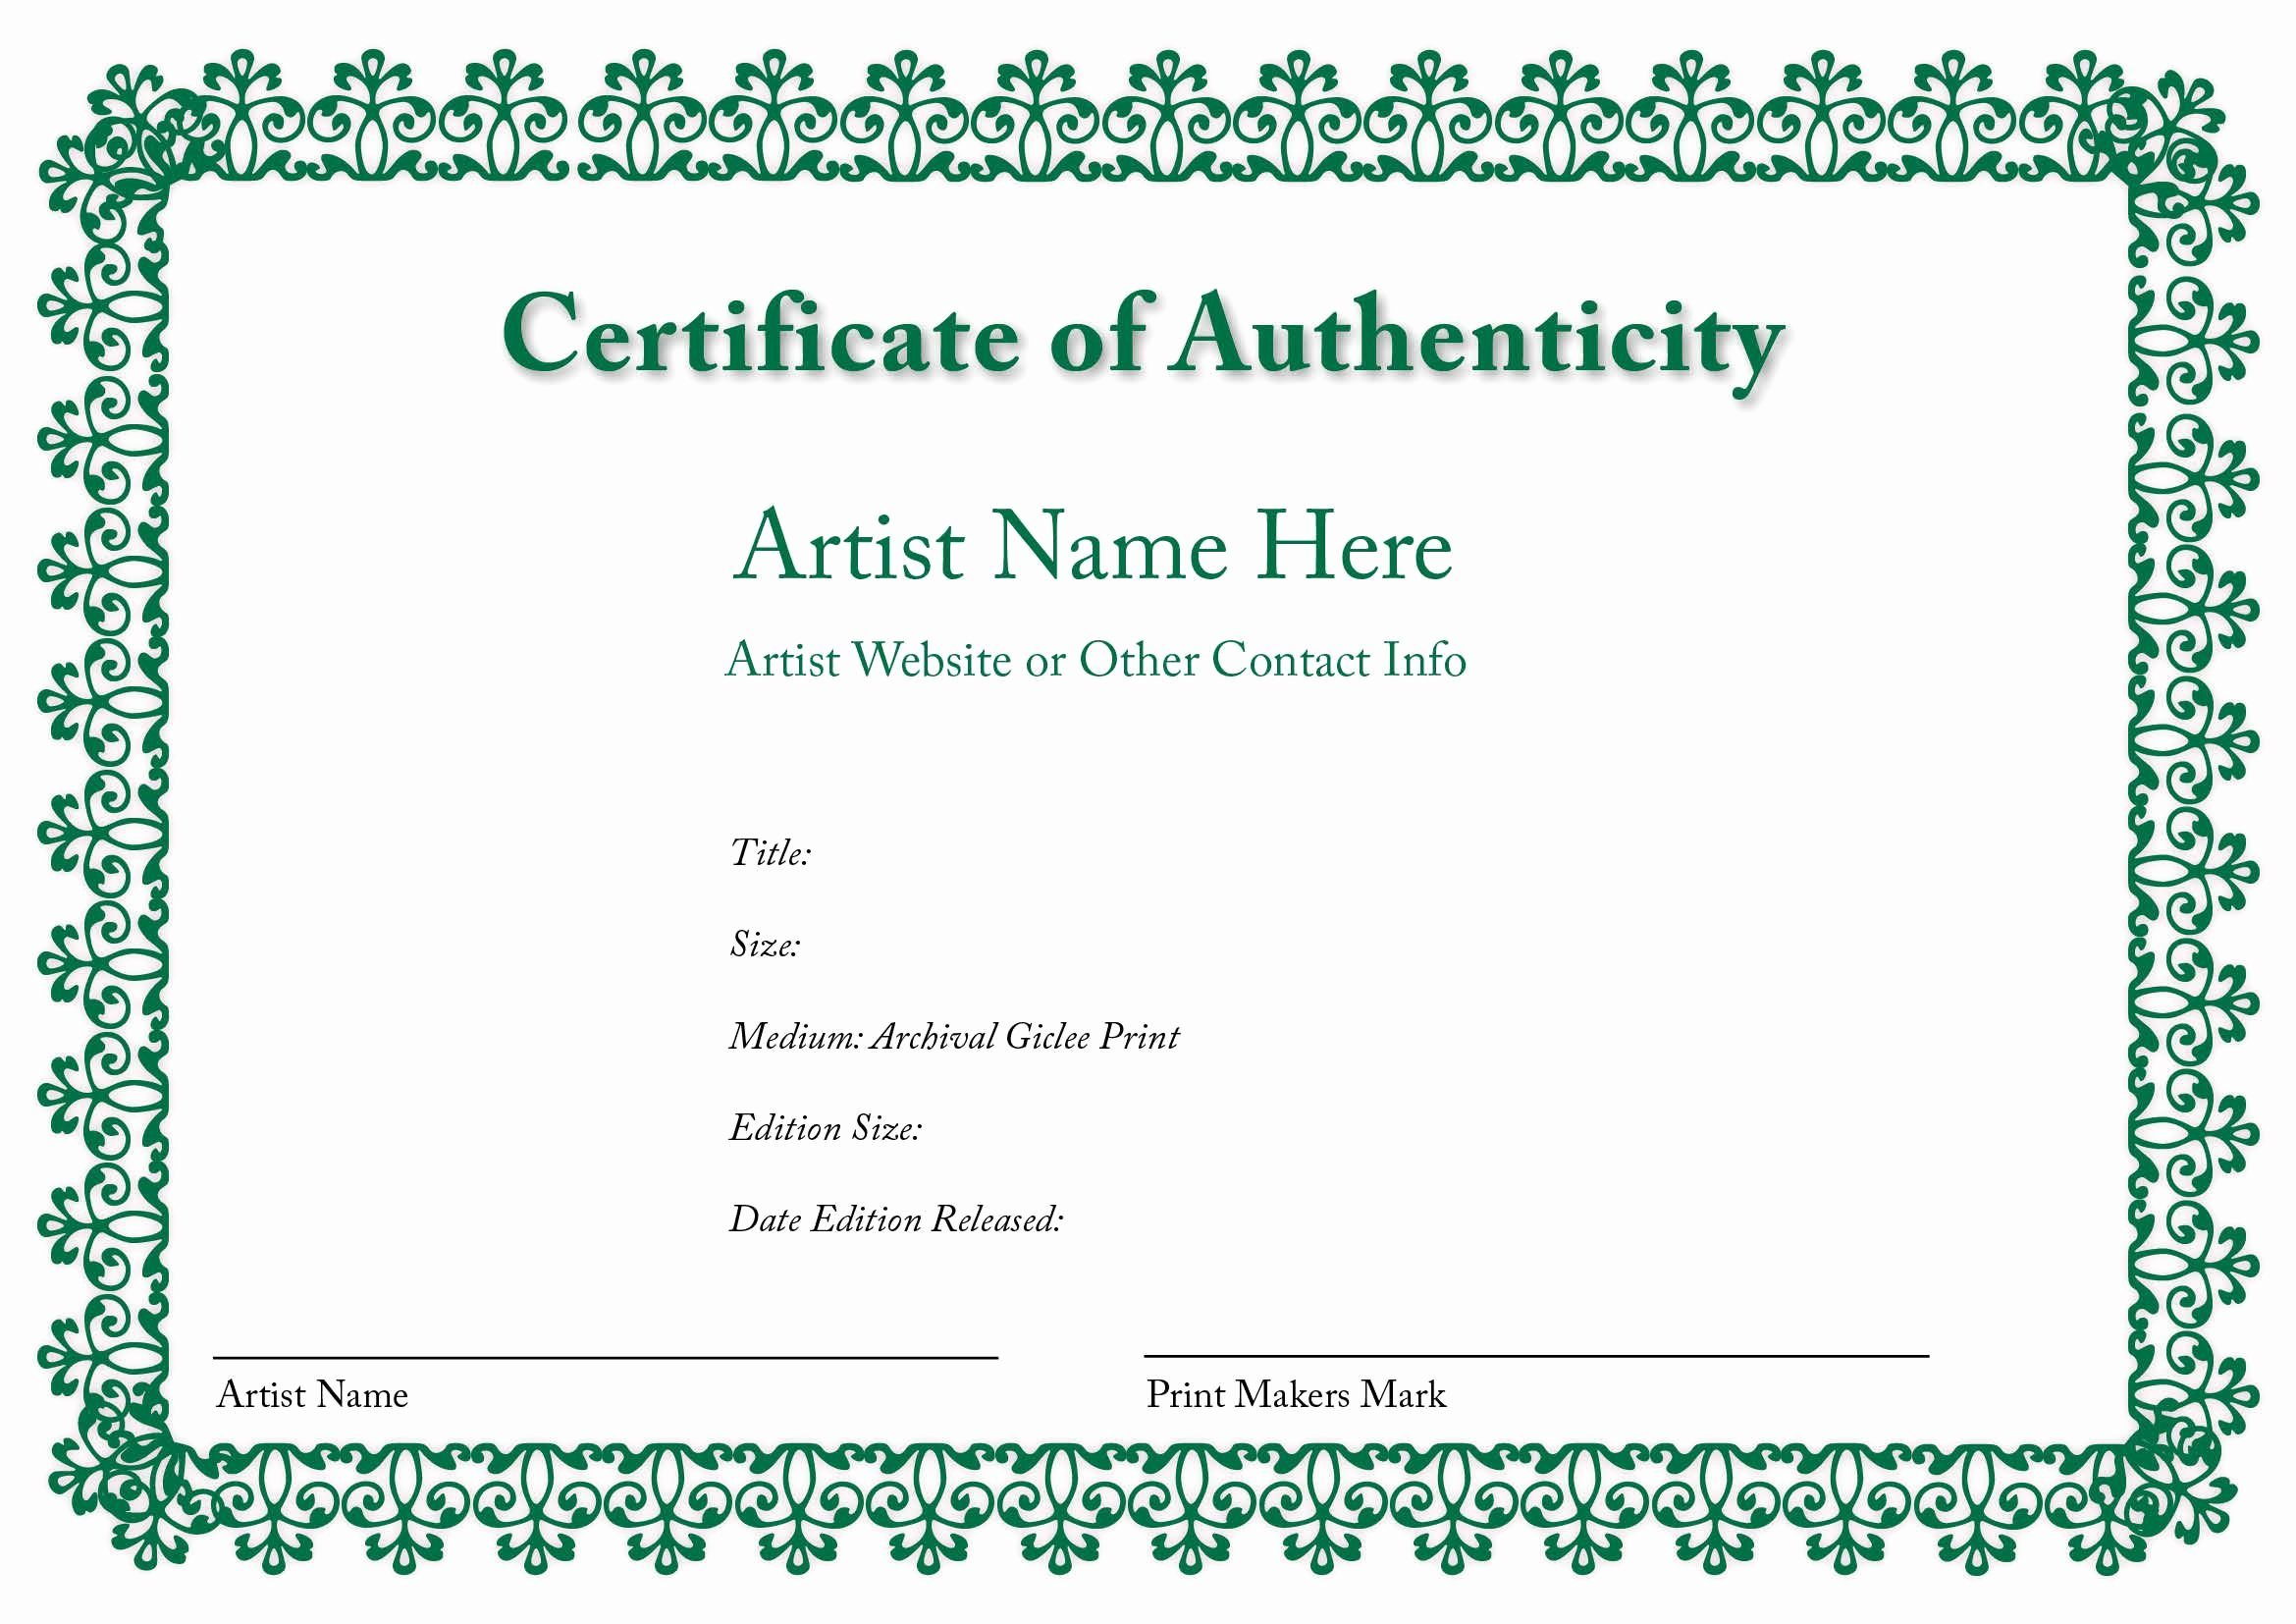 Certificate Of Authenticity Template Art New Certificate Of Authenticity Of An Art Print In 2019